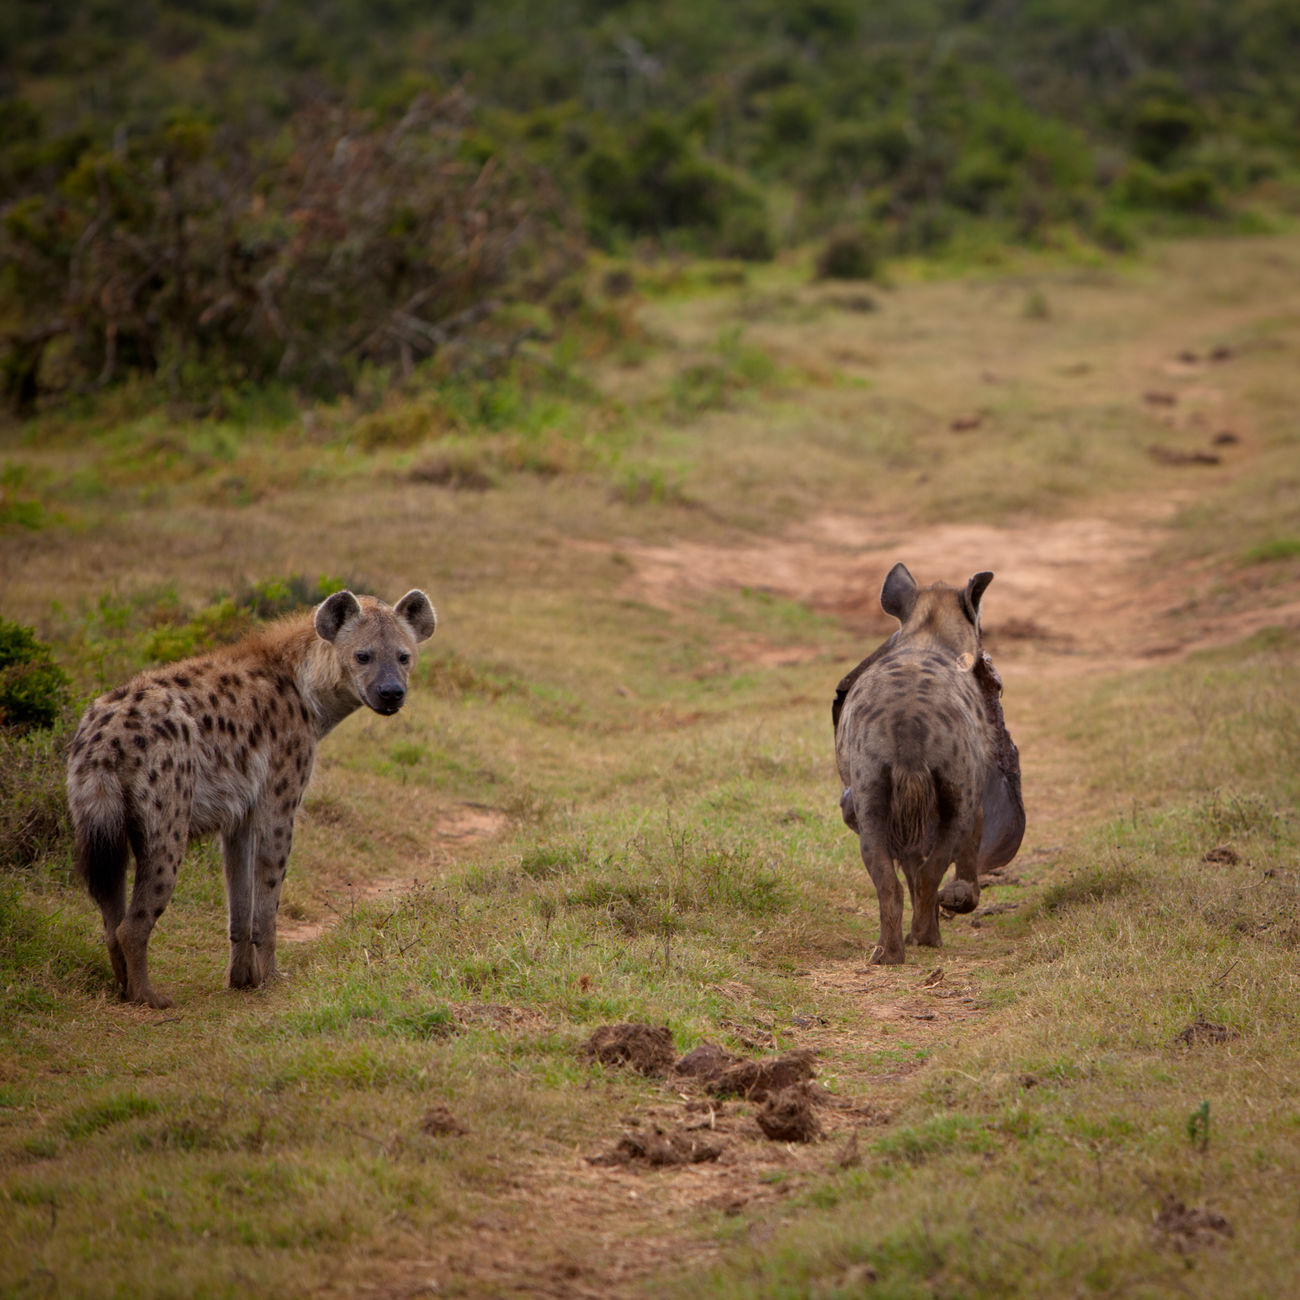 Hyenas scavenging South Africa Africa Animal Themes Animal Wildlife Animals In The Wild Cheetah Day Eastern Cape Grass Hyena Hyenas Mammal Nature Nature Nature_collection No People Outdoors Safari Safari Animals Safari Park South Africa Wild Wildlife